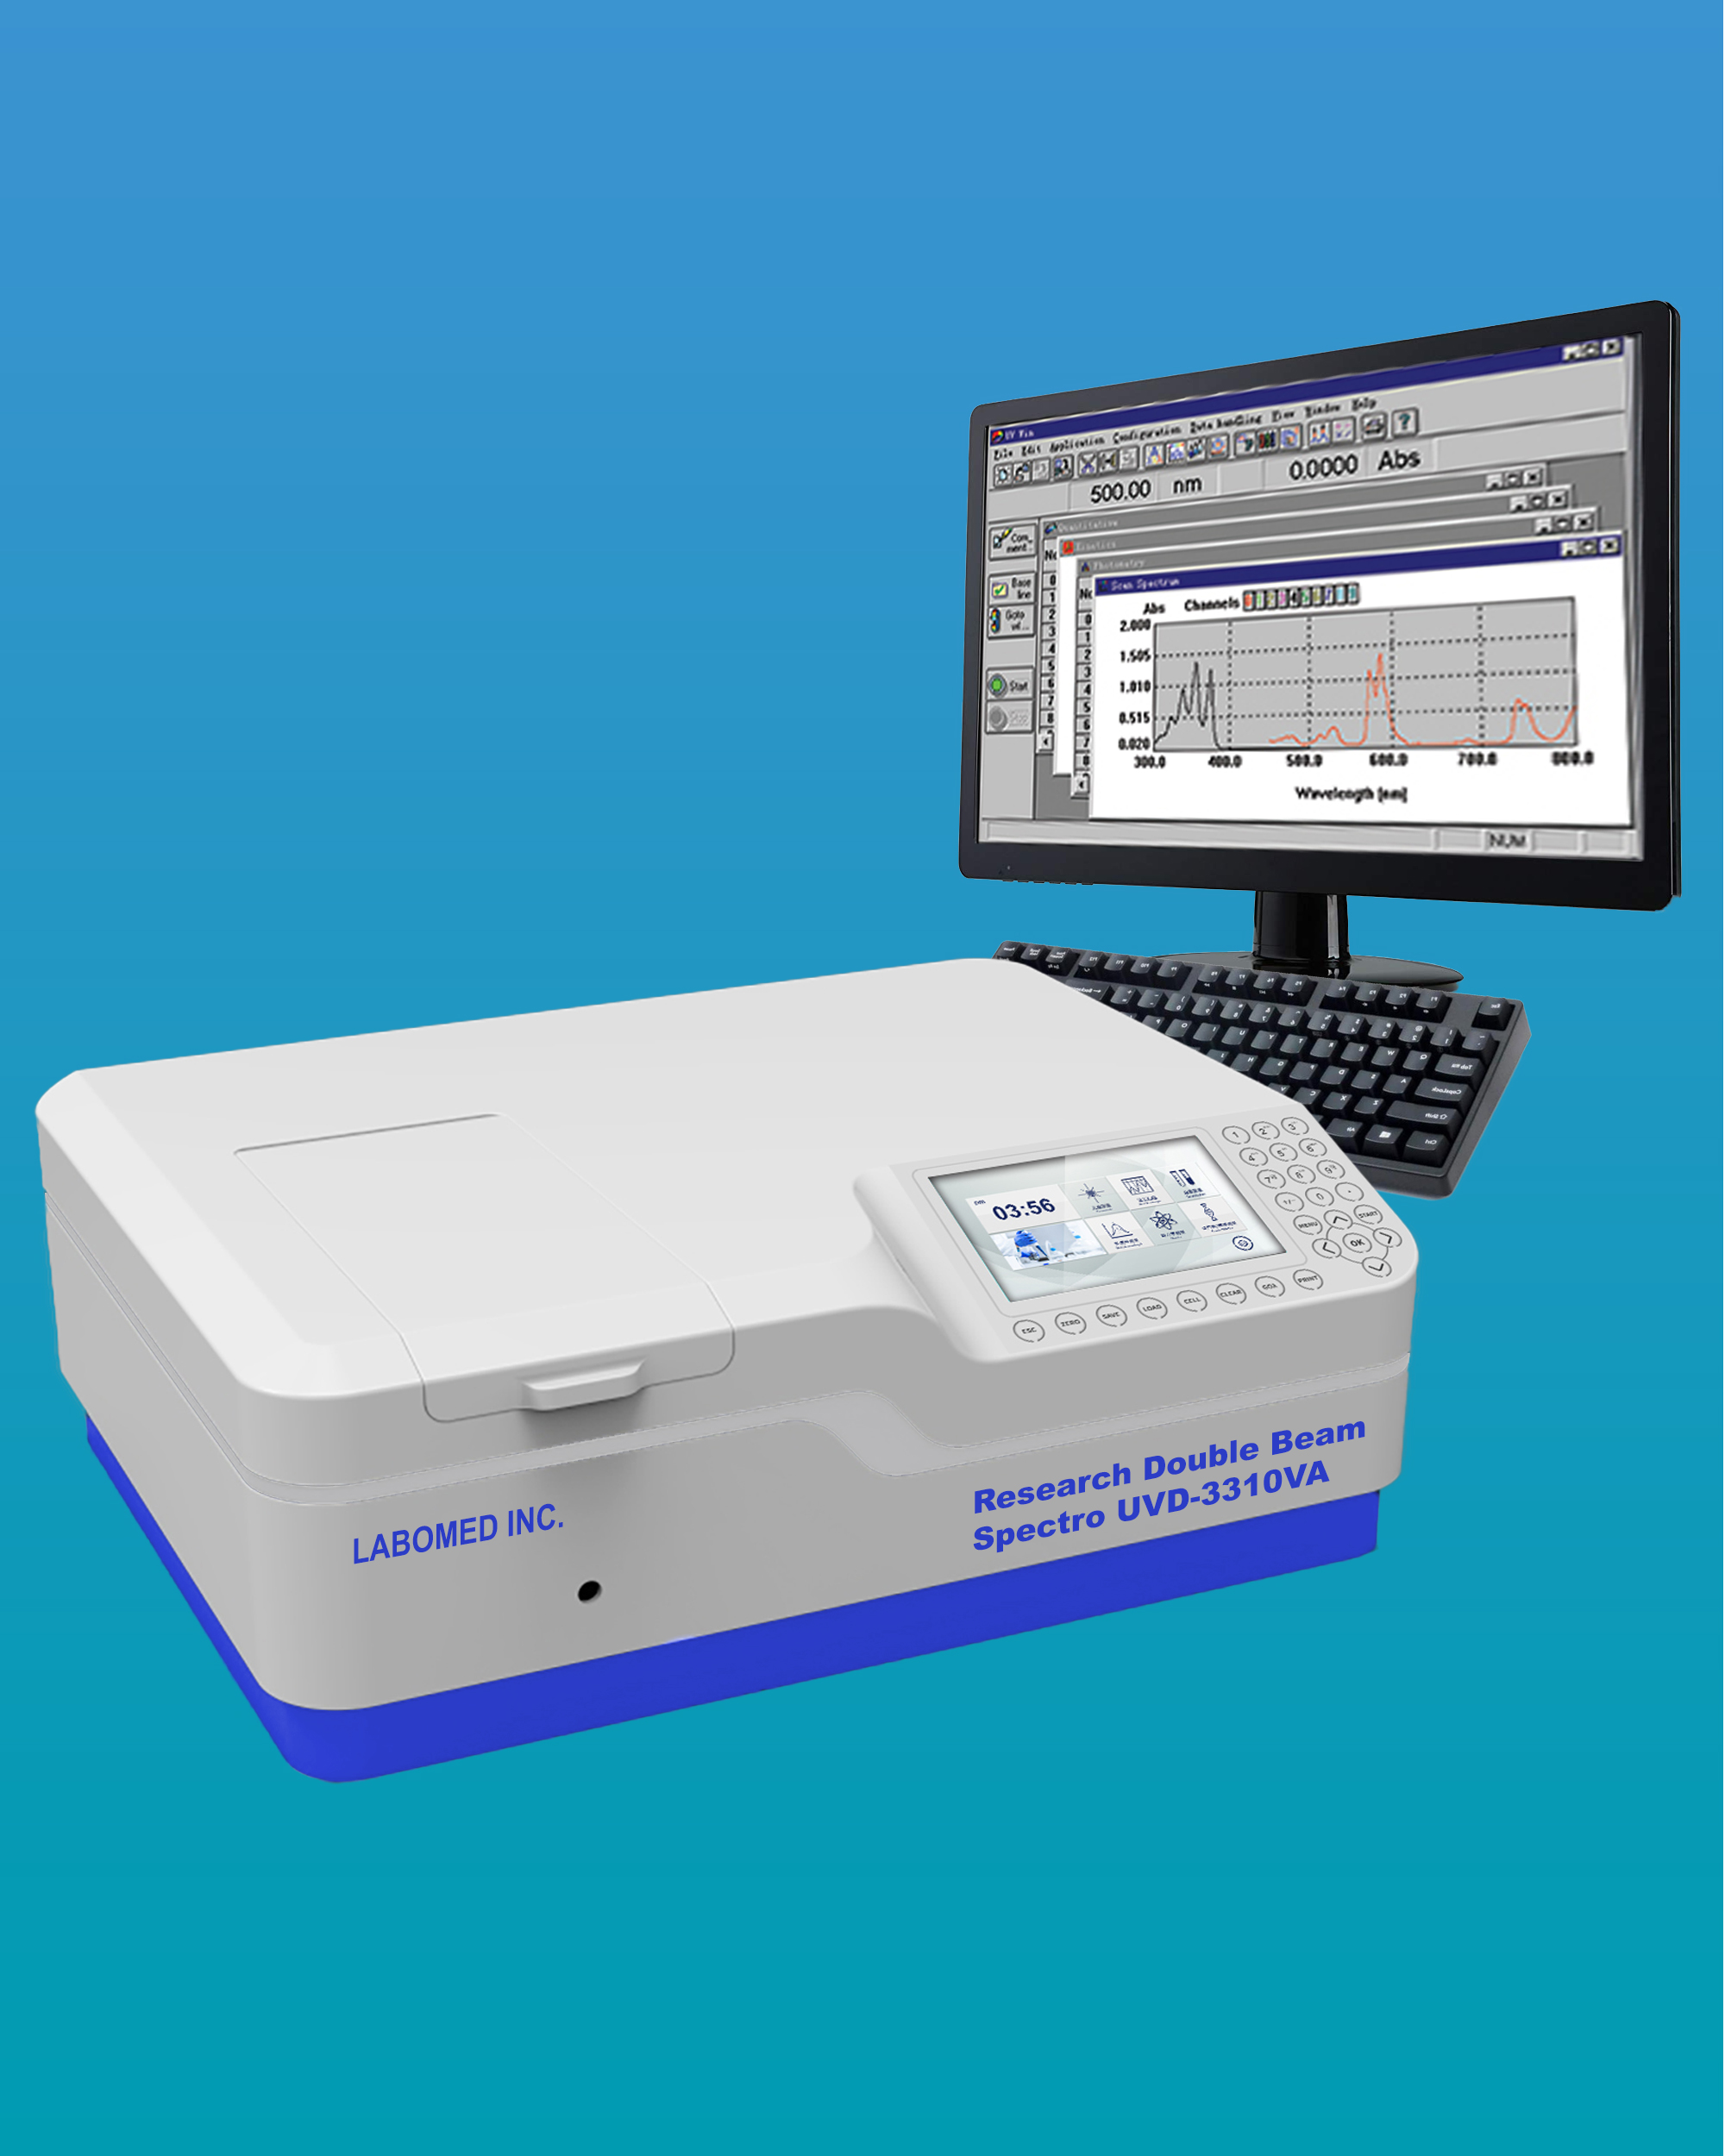 [UVD-3310VA] Double Beam Spectrophotometer w/ Photometric Range -4~4A & Spectral Bandwidth 0.5/1/2/4/5